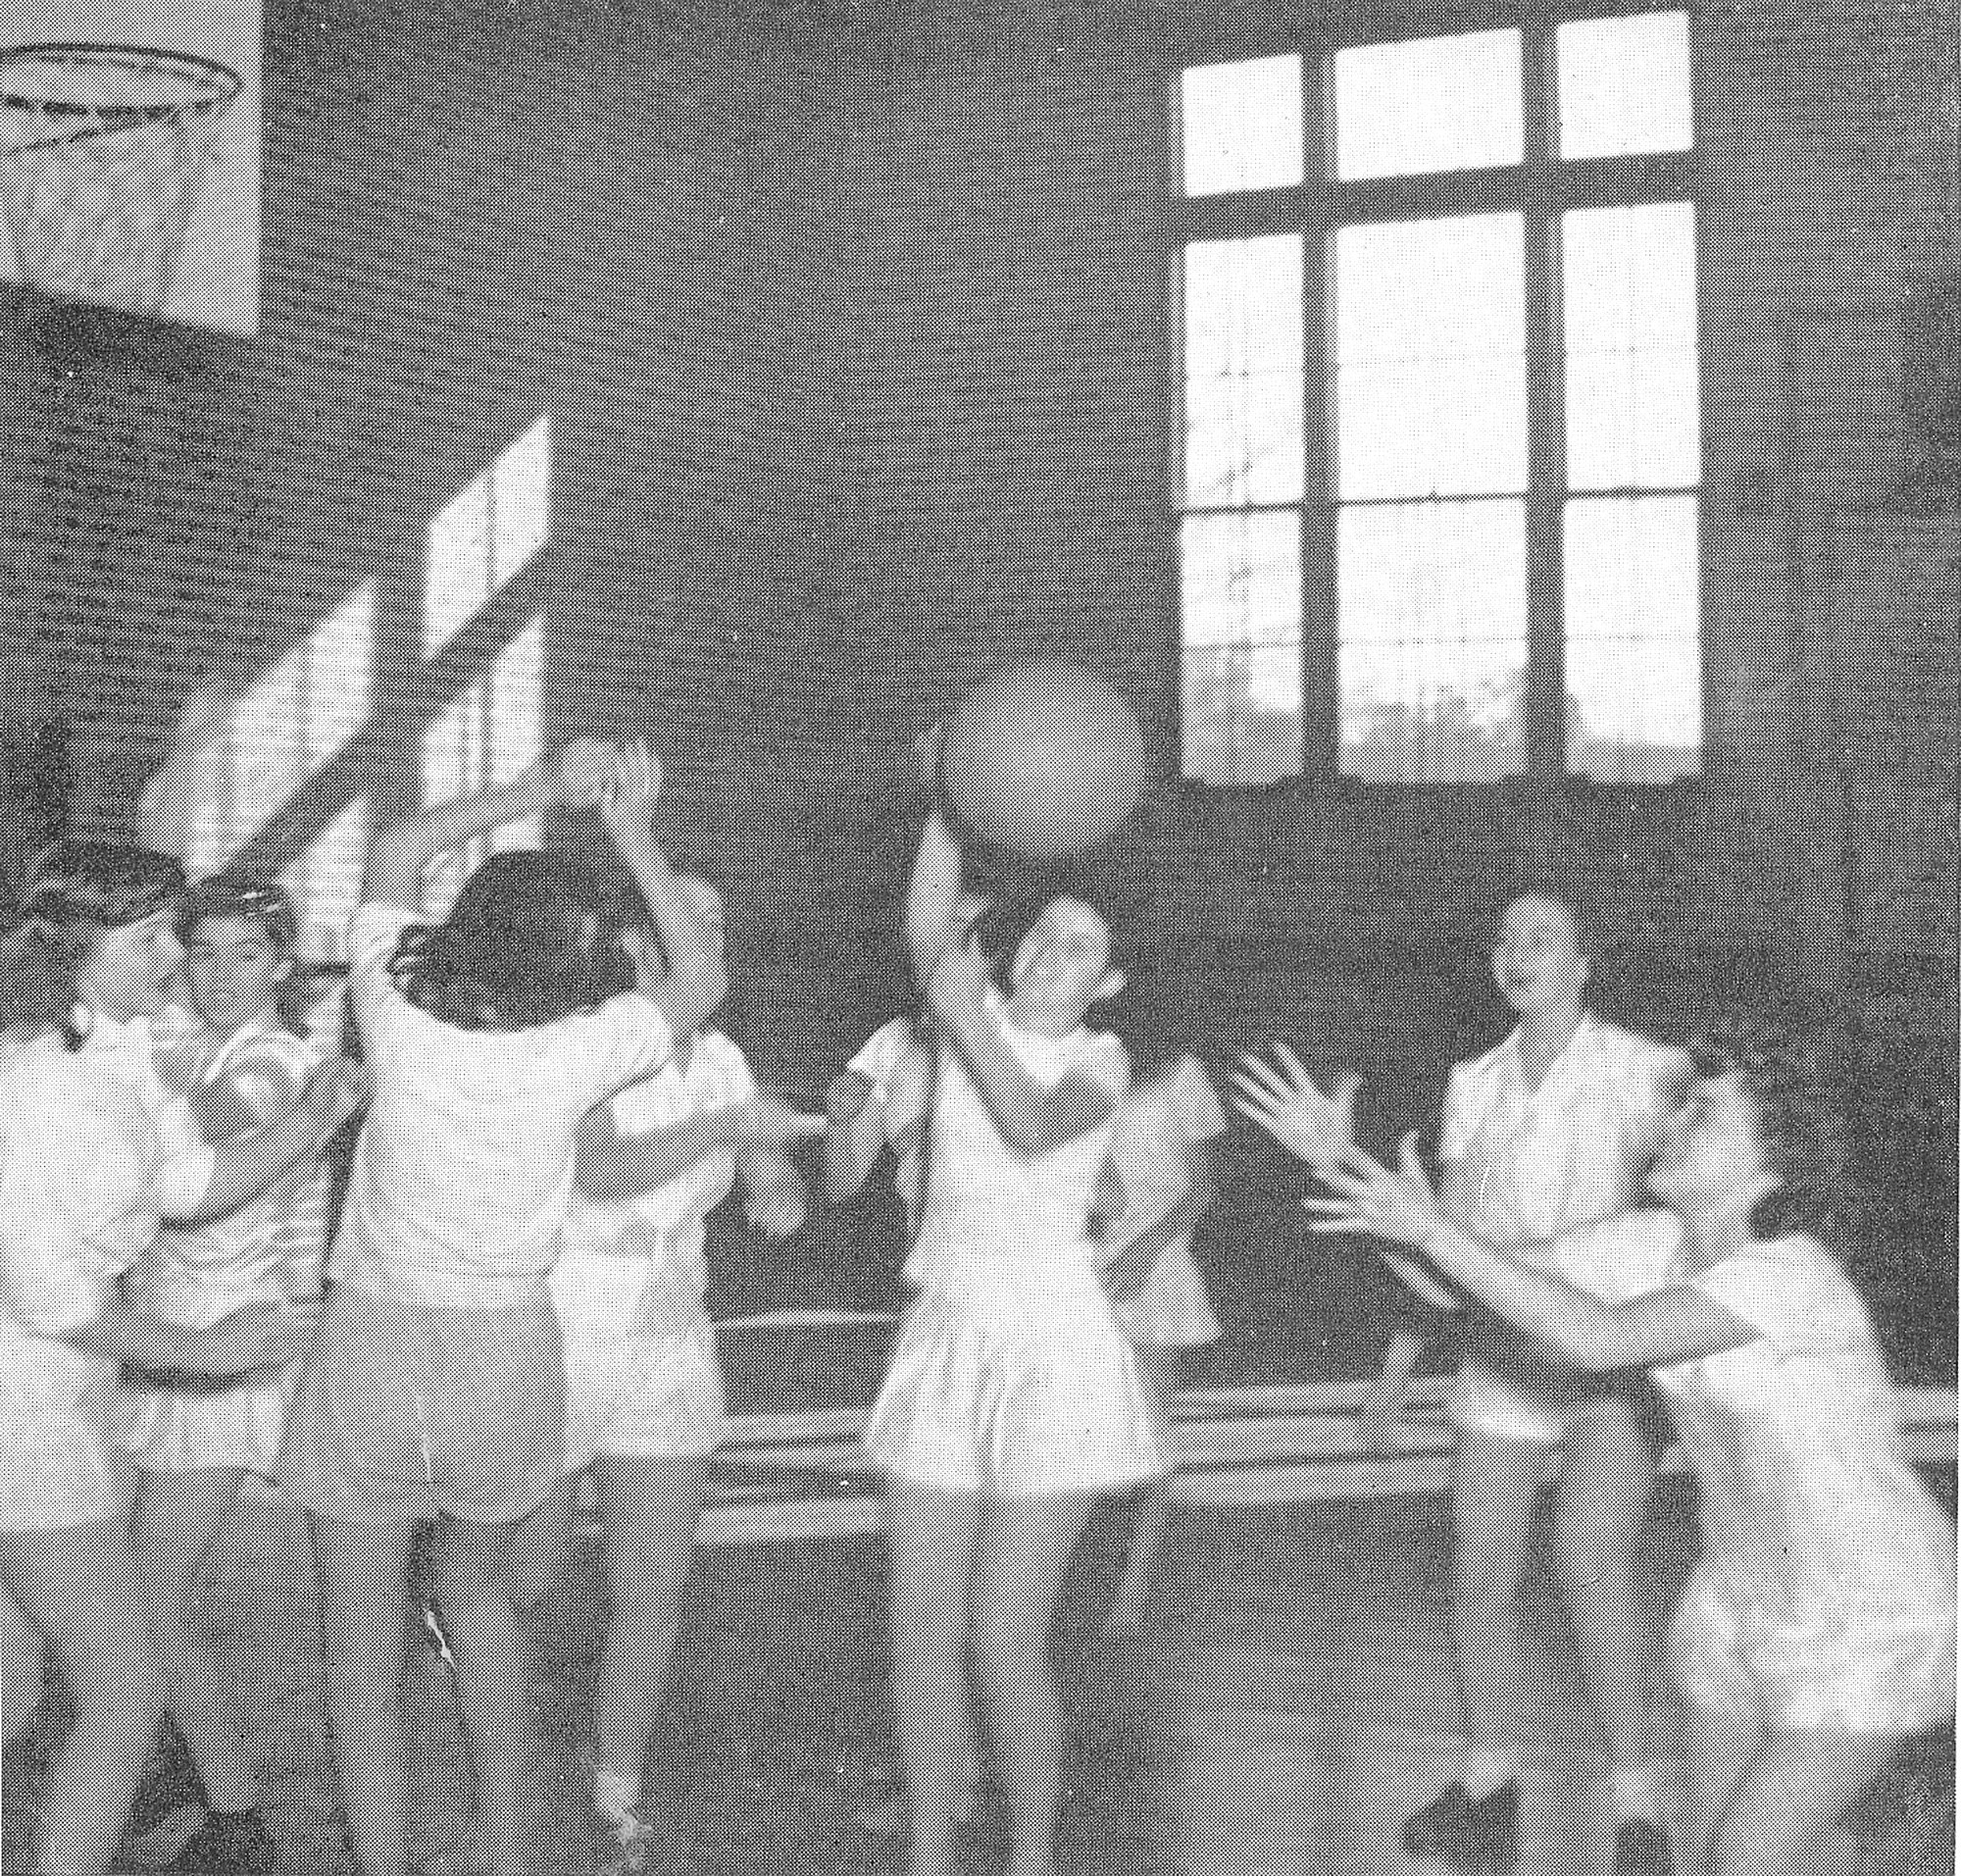 Senior SHS girls prepare for the class basketball games in 1945. From left are Jane Plowden, Iris Harris, Bertha Ross, Jean Boartfield, Carolyn Brown, Sara Horovin, Lillie McCoy, Lavinia Hubbard and Betty Doverspike.